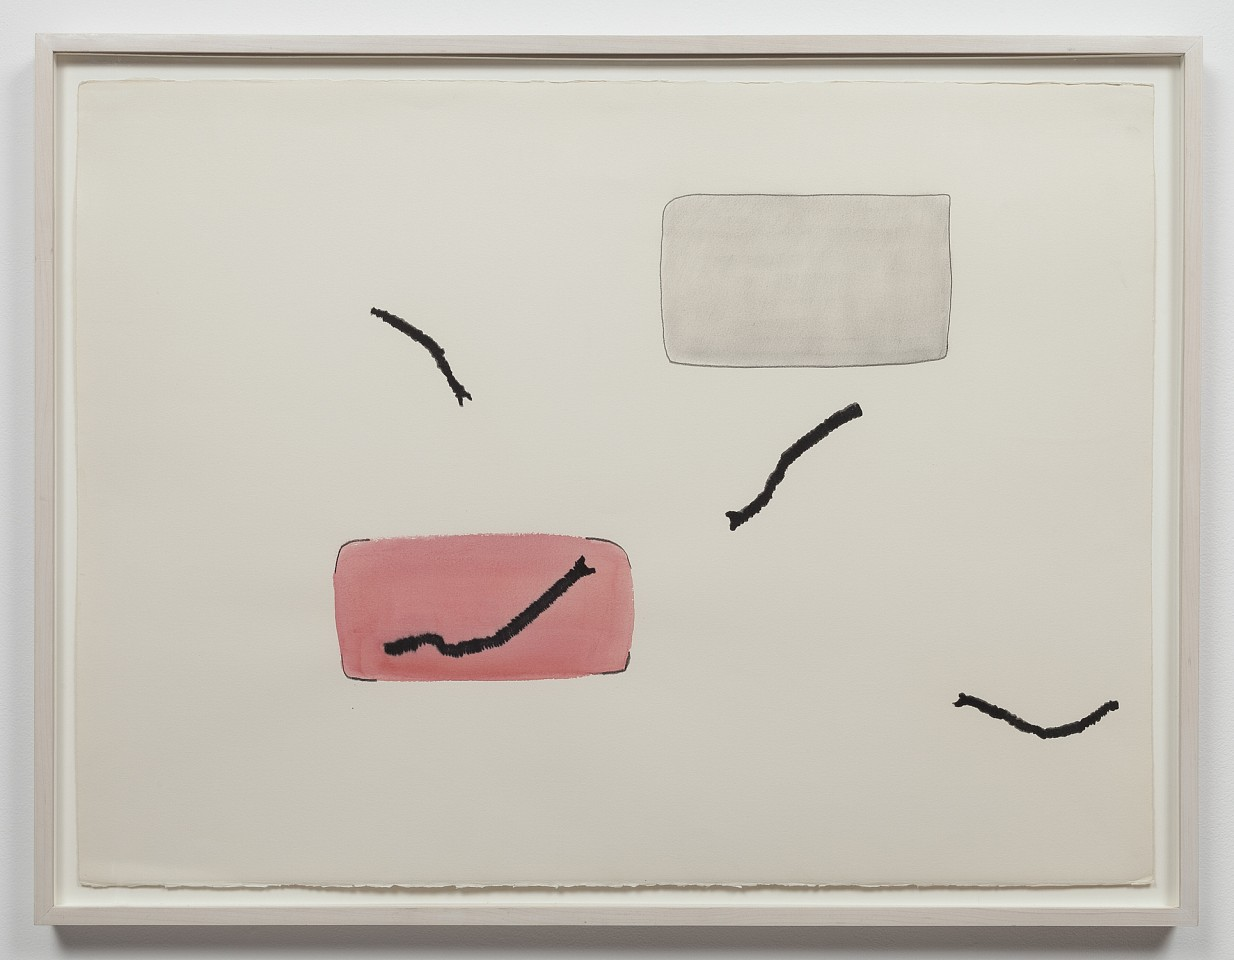 Ree Morton ,   Line Series  ,  1974     watercolor, pencil and charcoal on paper     22¼ x 30 in/56.5 x 76 cm     REM-74-DR-073/R